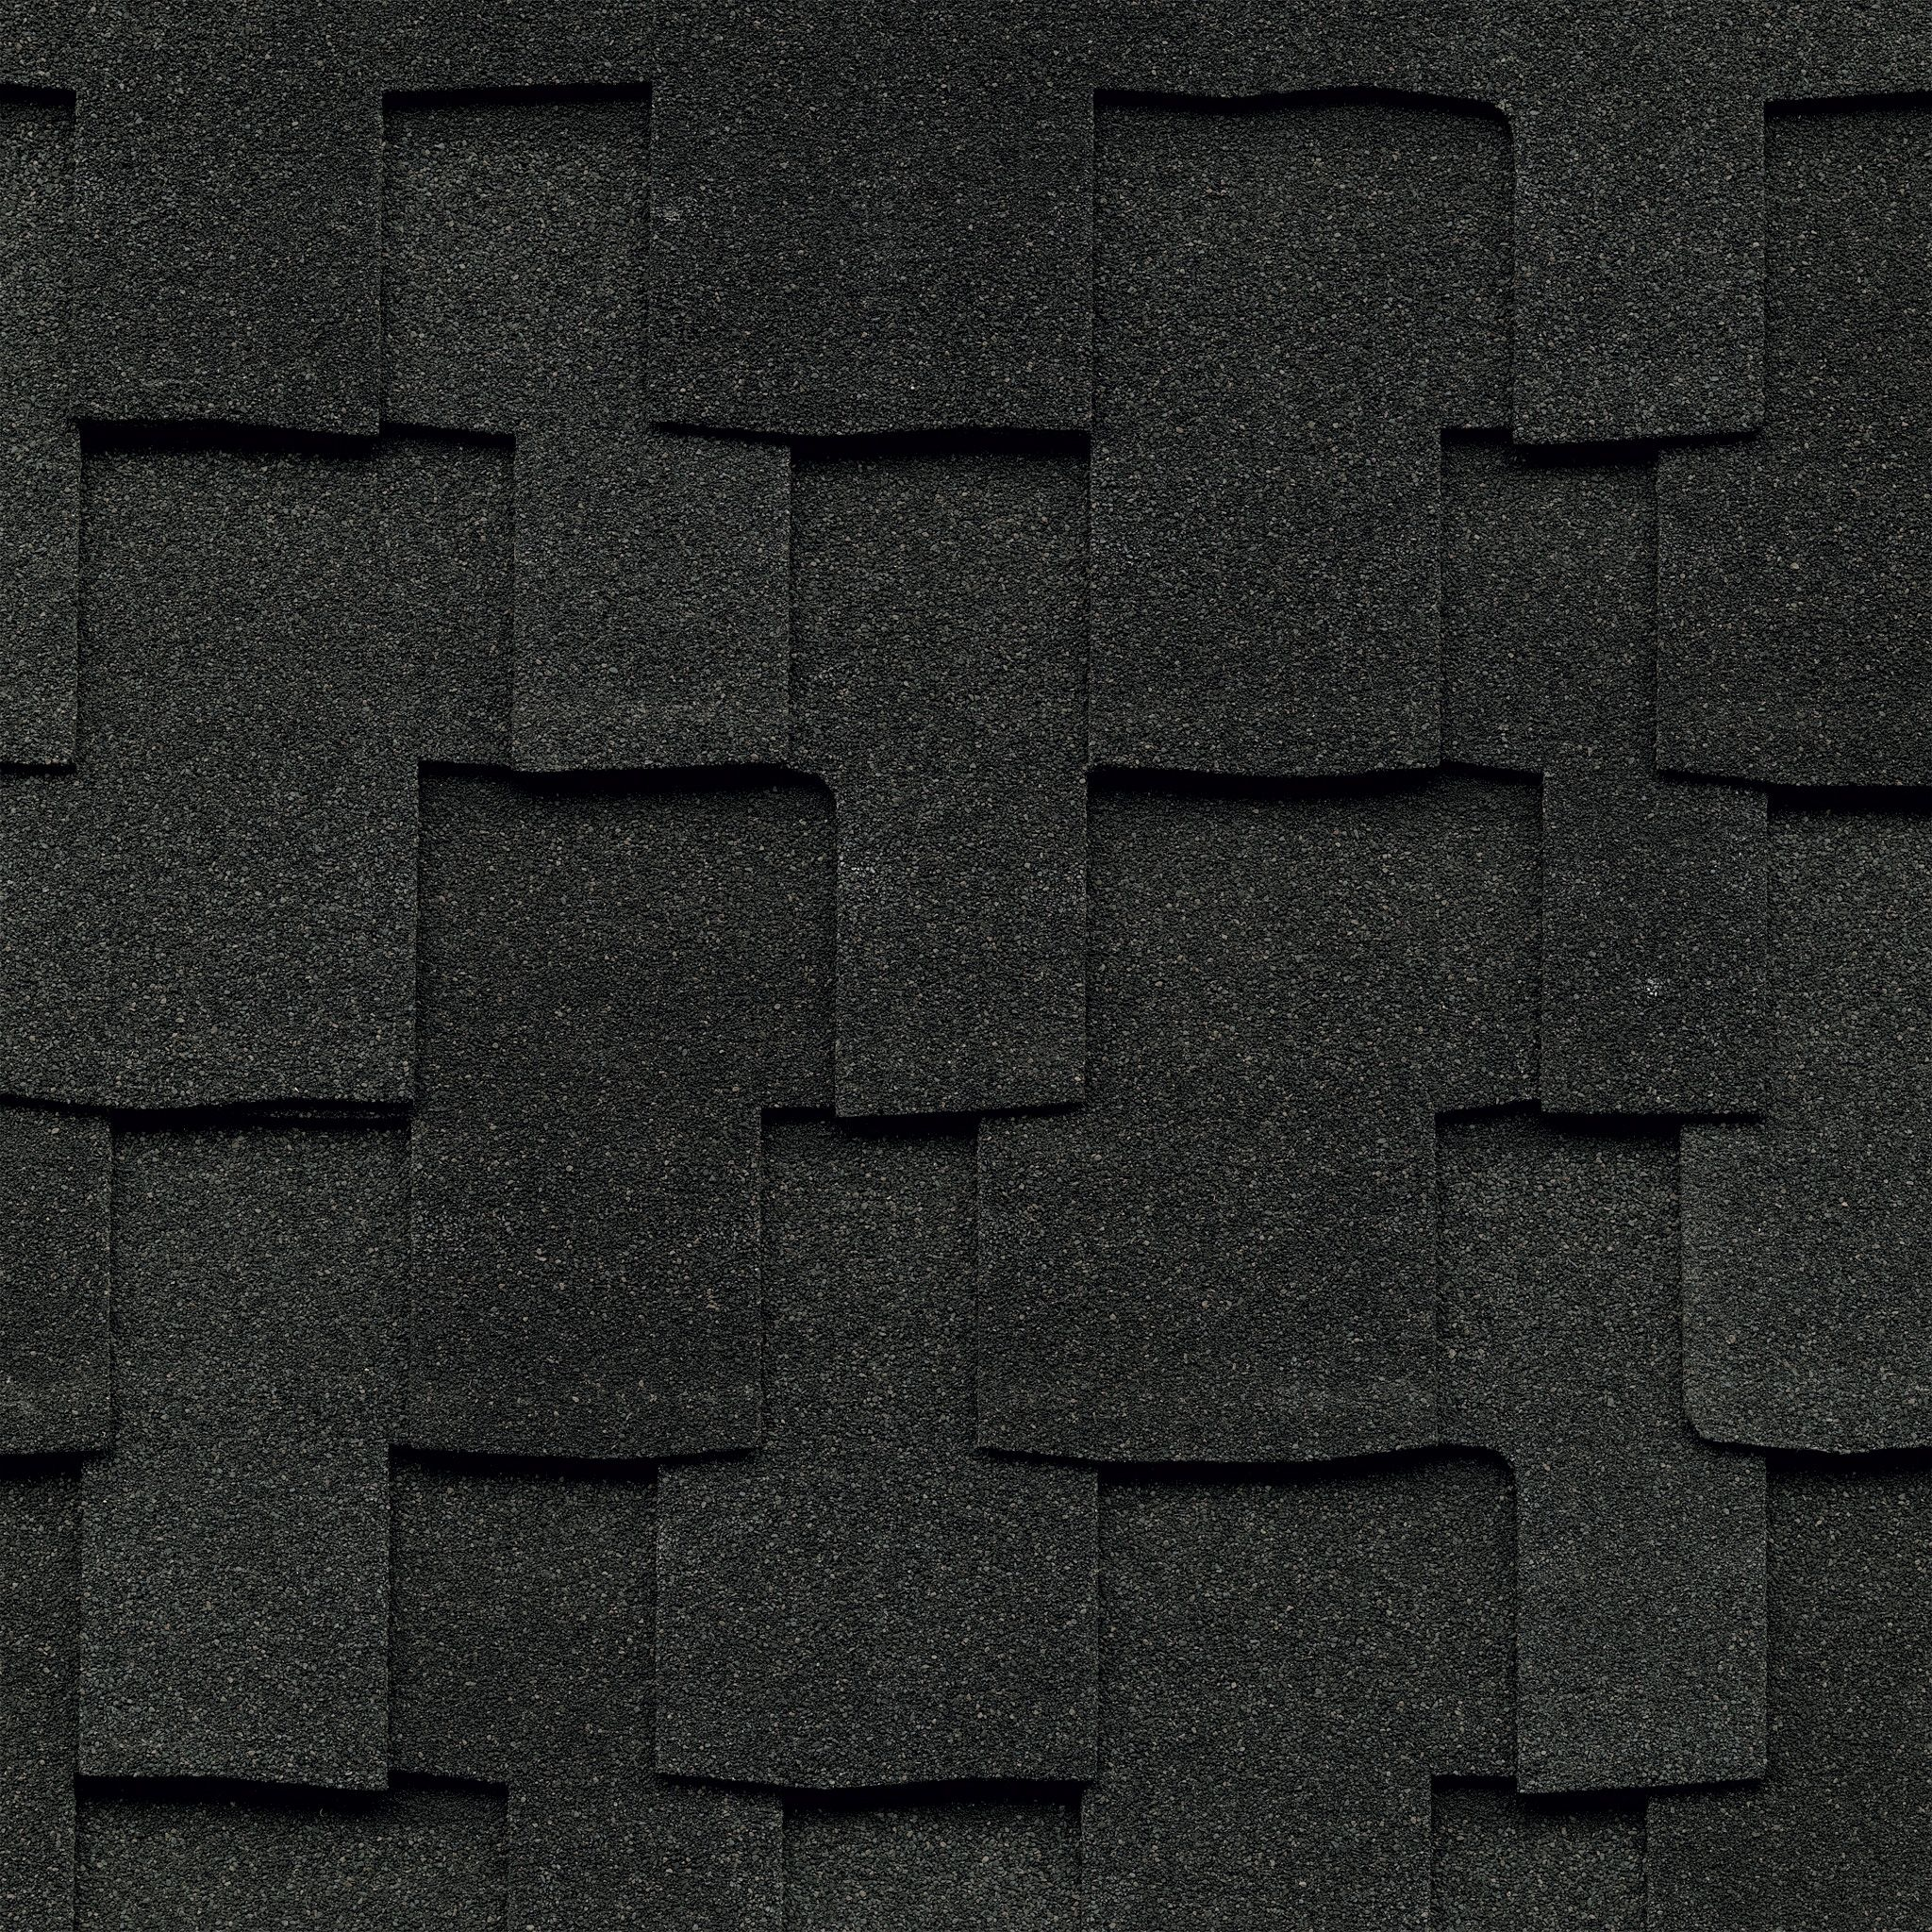 Charcoal Grand Sequioa Shingle Roof Installed By Brown Roofing In Kansas City Architectural Shingles Roof Roof Architecture Roof Shingles